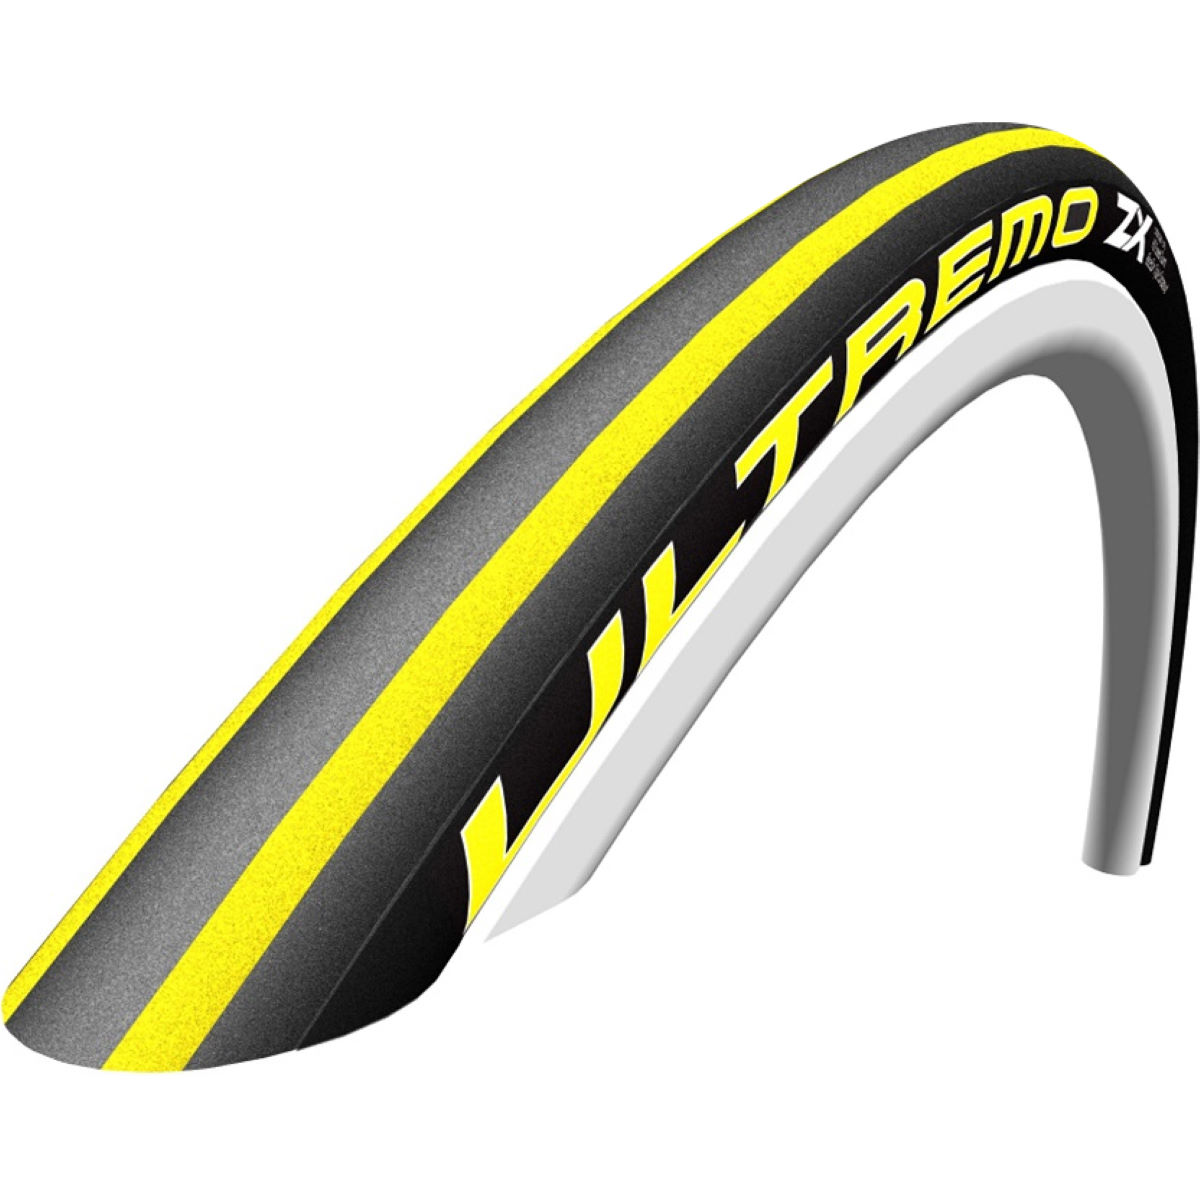 Schwalbe Ultremo ZX Evo V-Guard Folding Road Tyre 2013